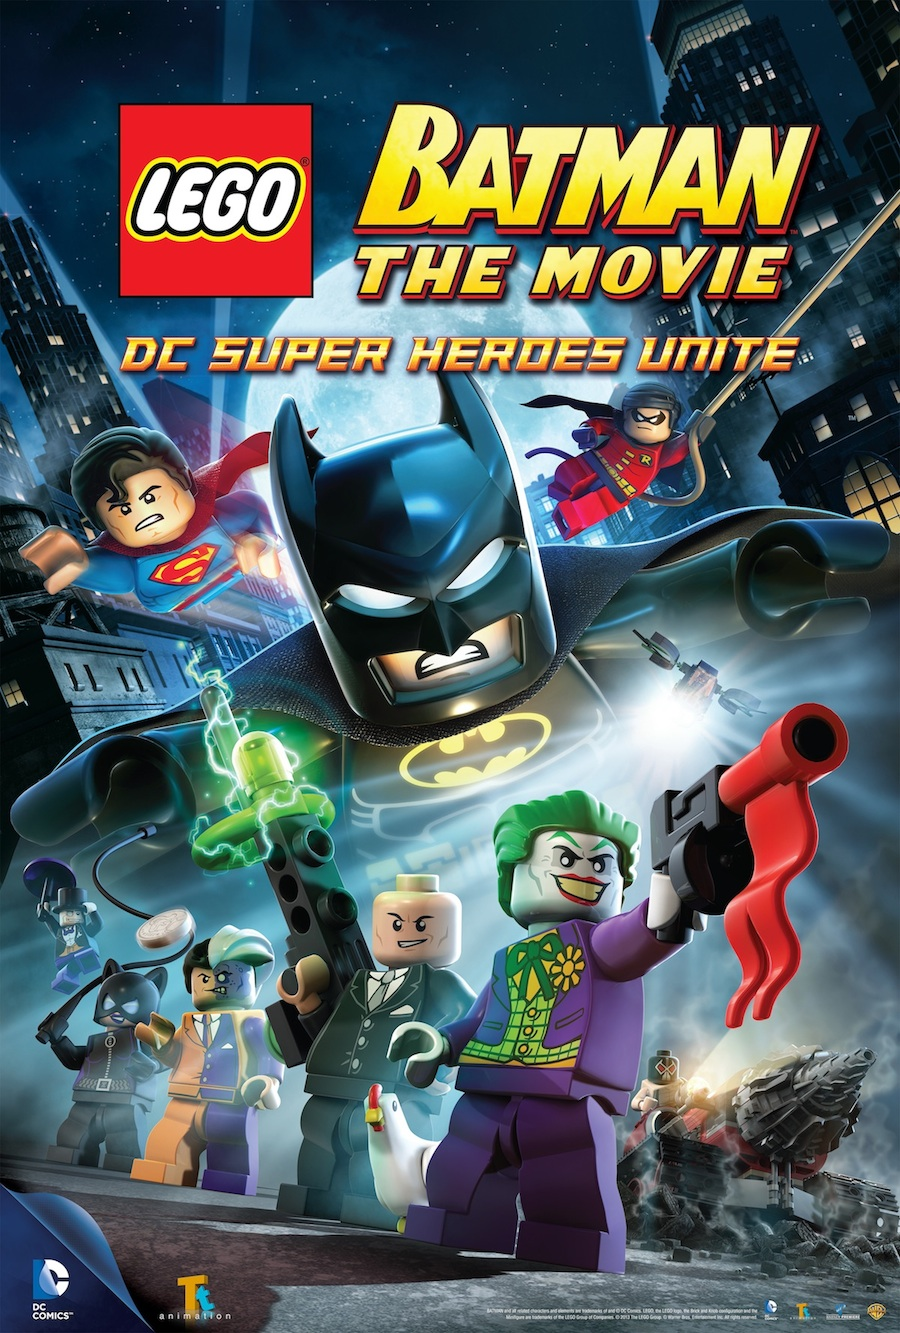 Lego Batman: The Movie